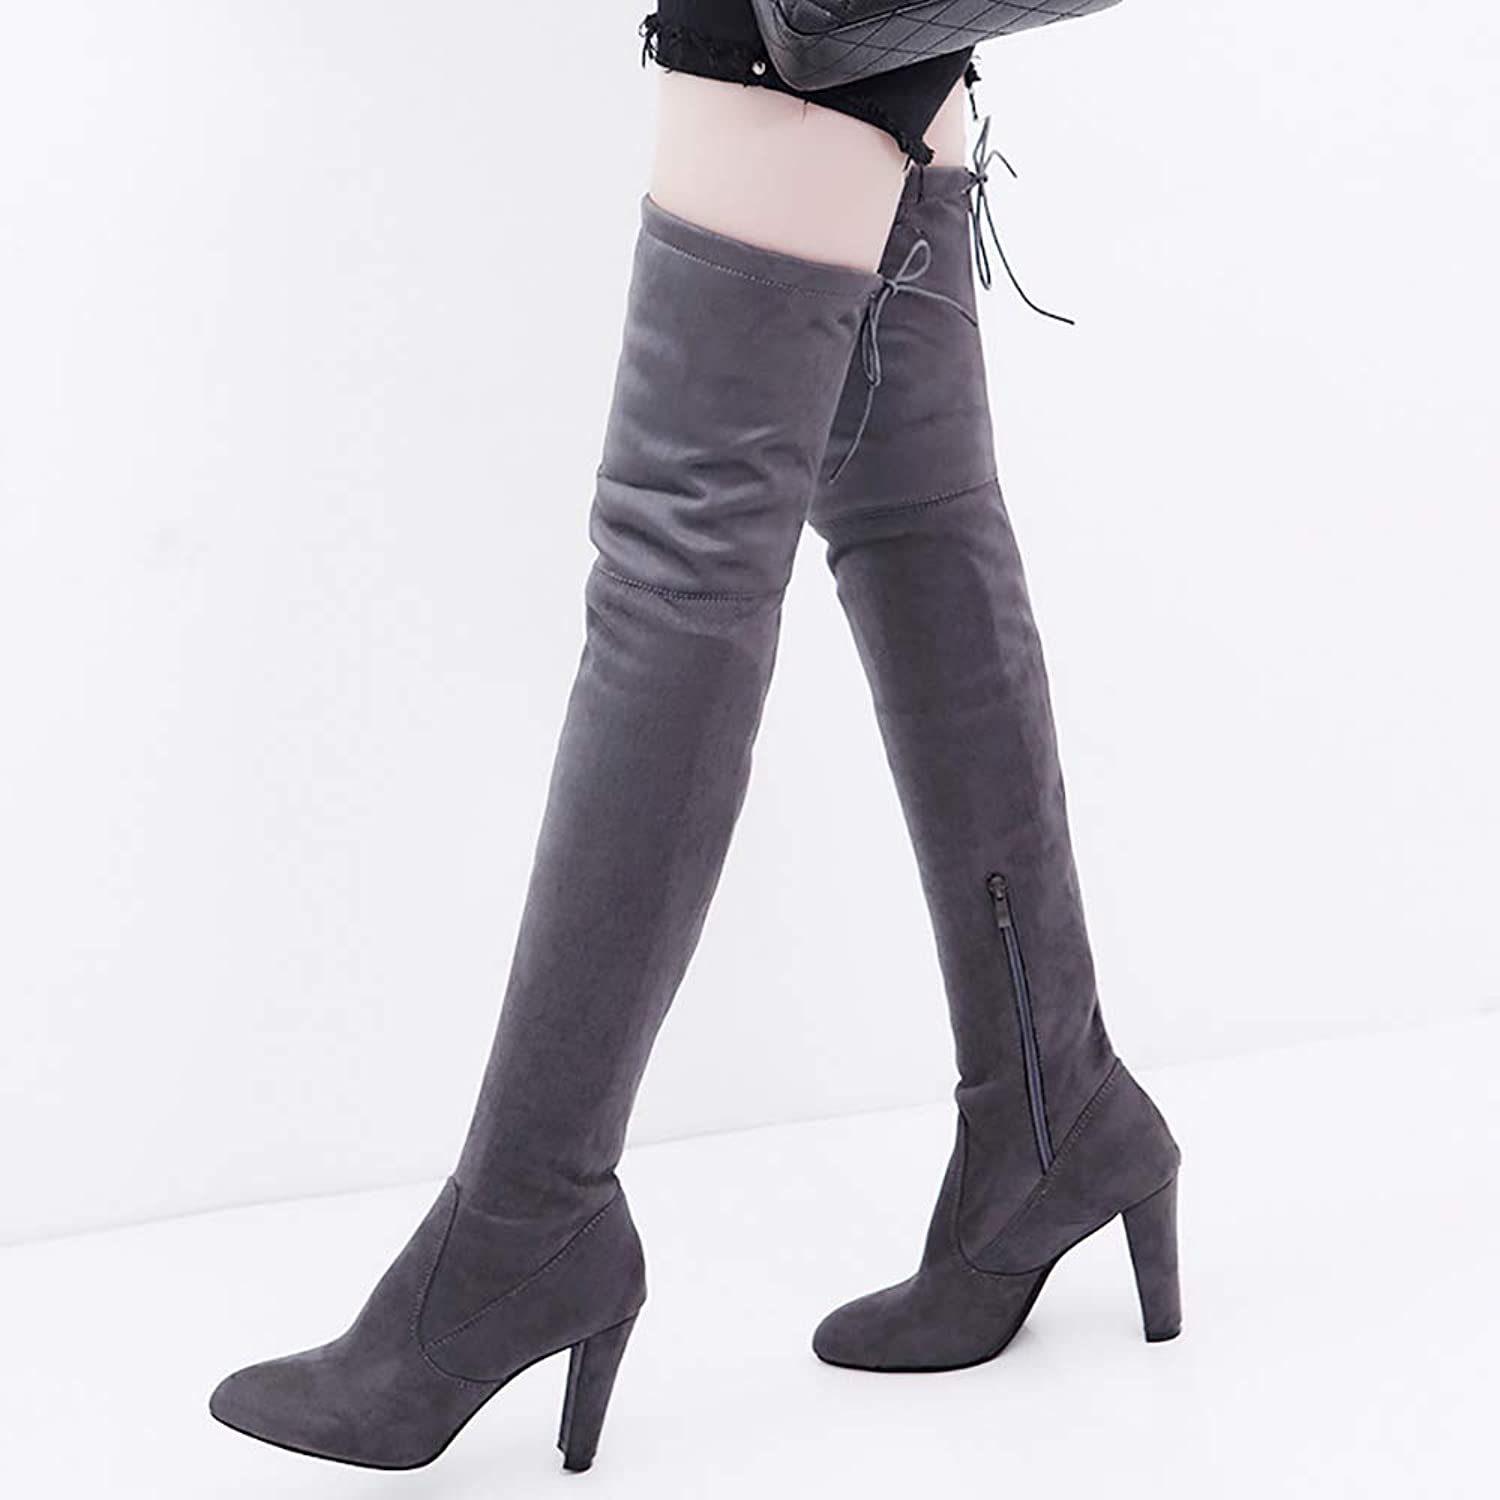 Ladies Warm Velvet Over Knee Boots, Pointy Thick and Female Boots, Suede Skinny Legs Boots, High Heel Thin Boots,43